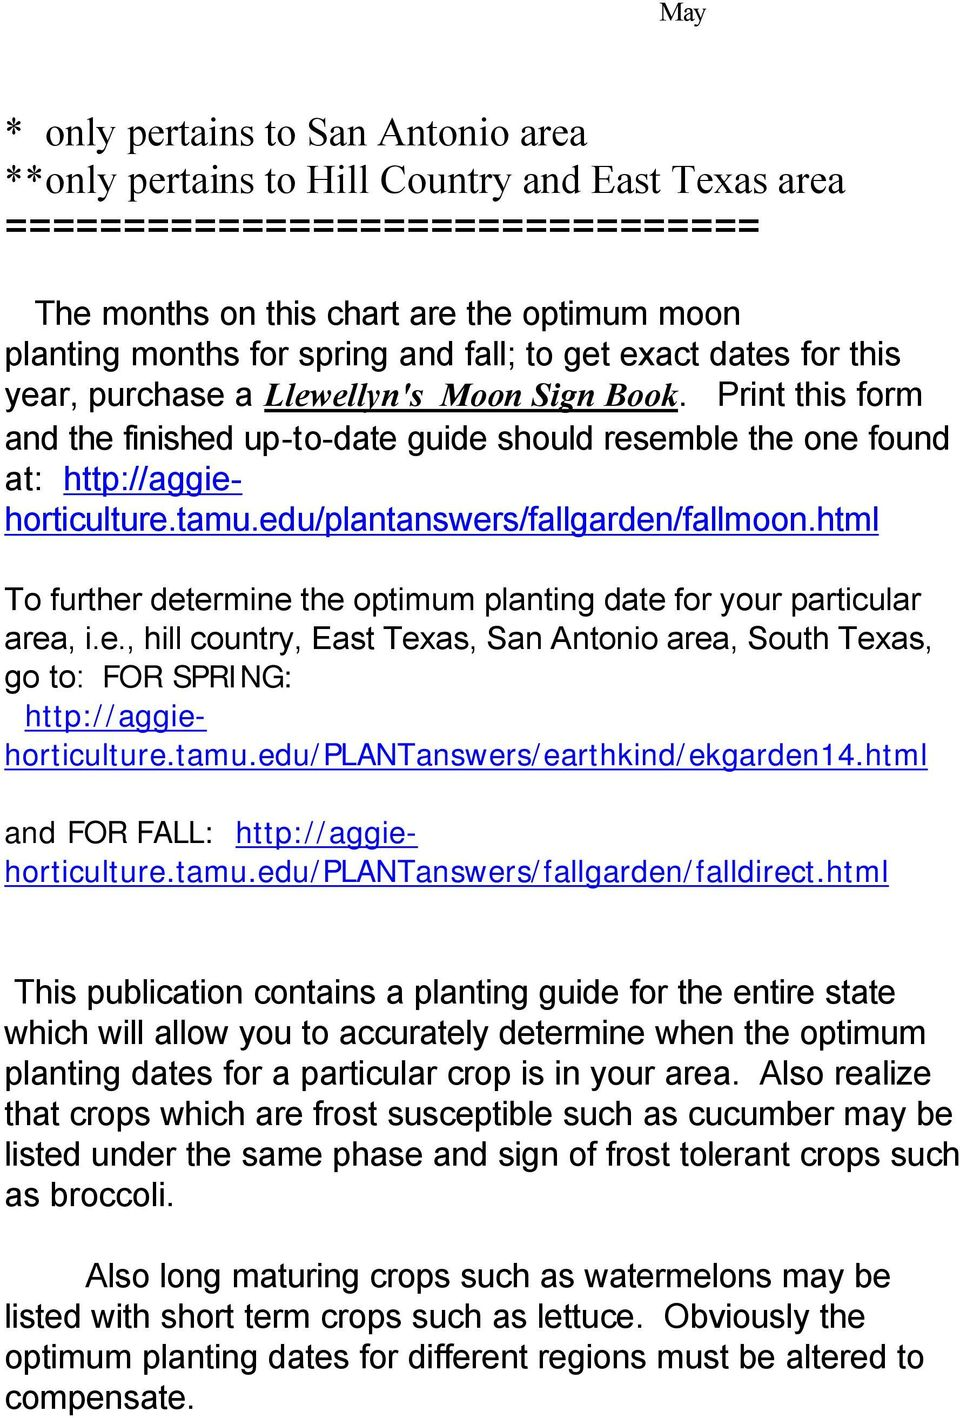 edu/plantanswers/fallgarden/fallmoon.html To further determine the optimum planting date for your particular area, i.e., hill country, East Texas, San Antonio area, South Texas, go to: FOR SPRING: http://aggiehorticulture.